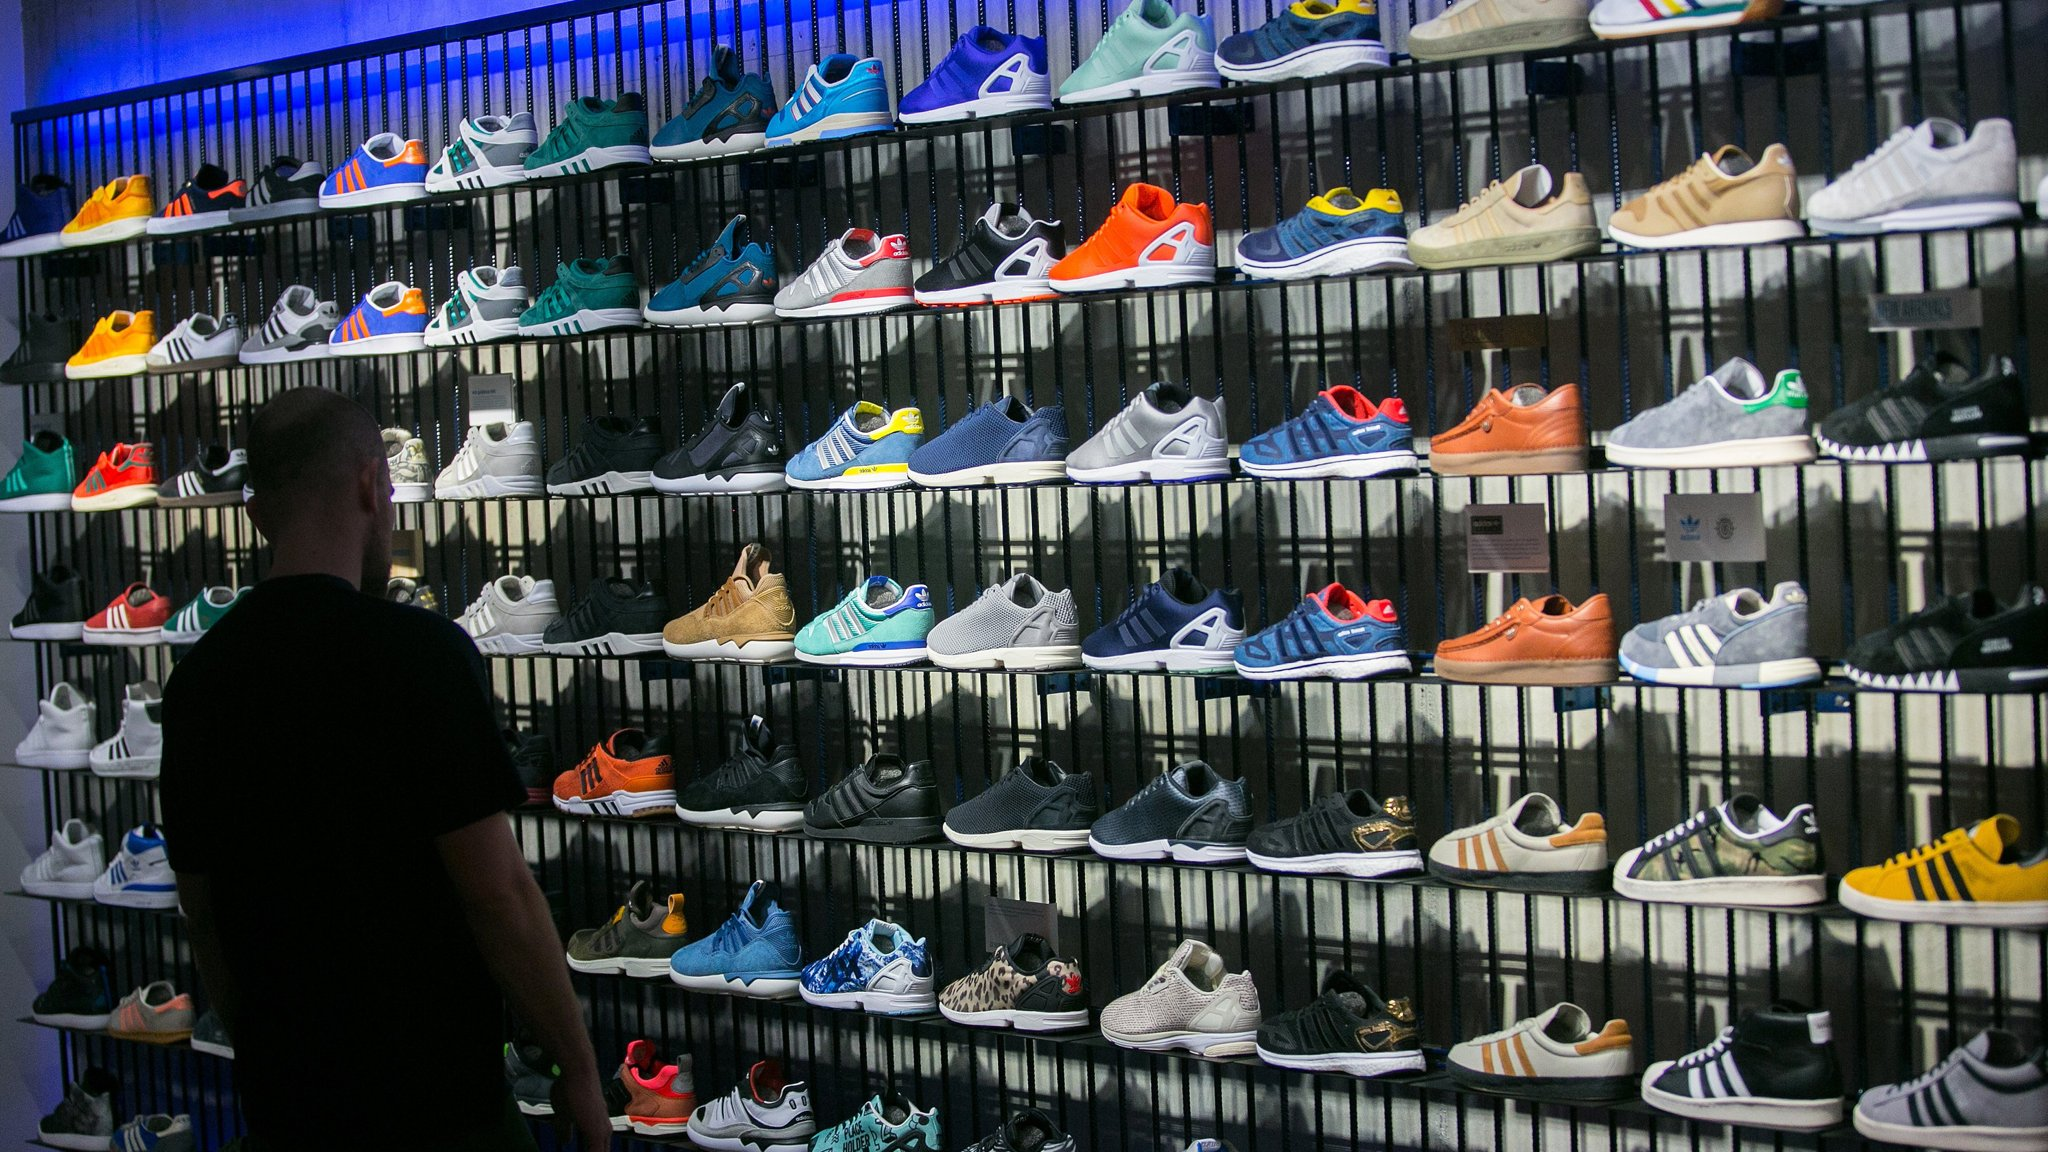 The 'Athleisure' fashion trend helped JD Sports boost sales